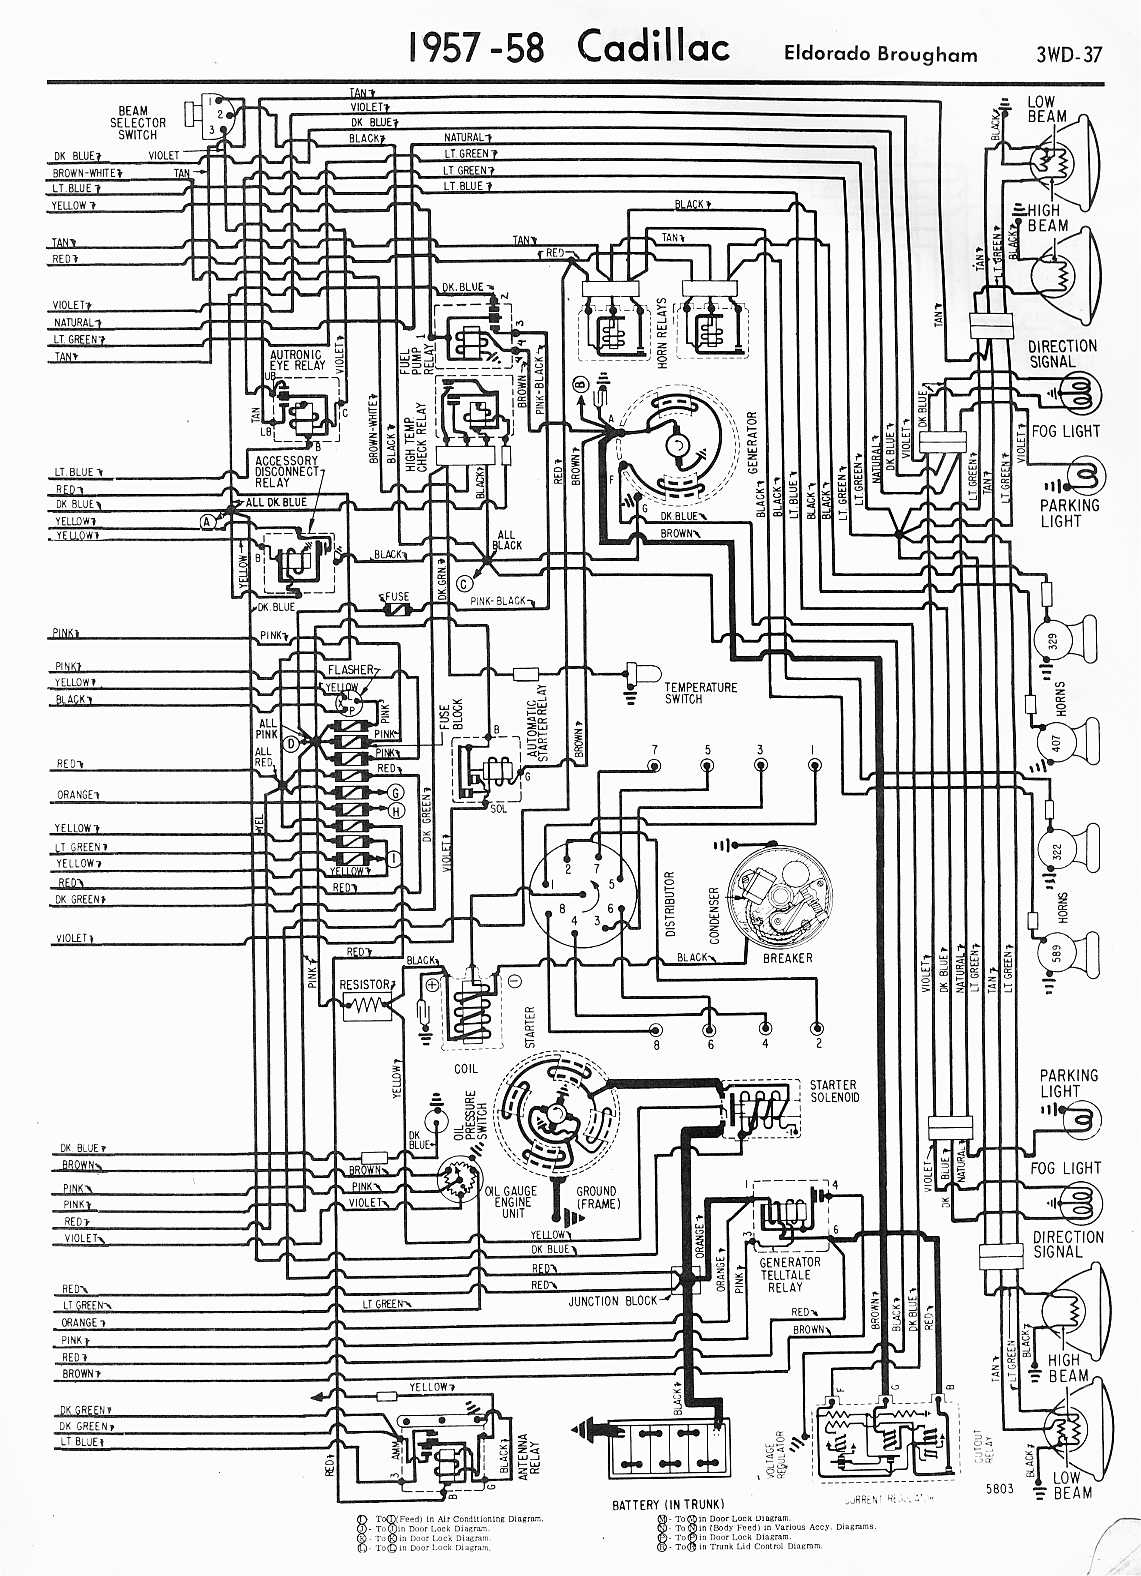 cadillac eldorado wiring diagram smart wiring diagrams u2022 rh emgsolutions co